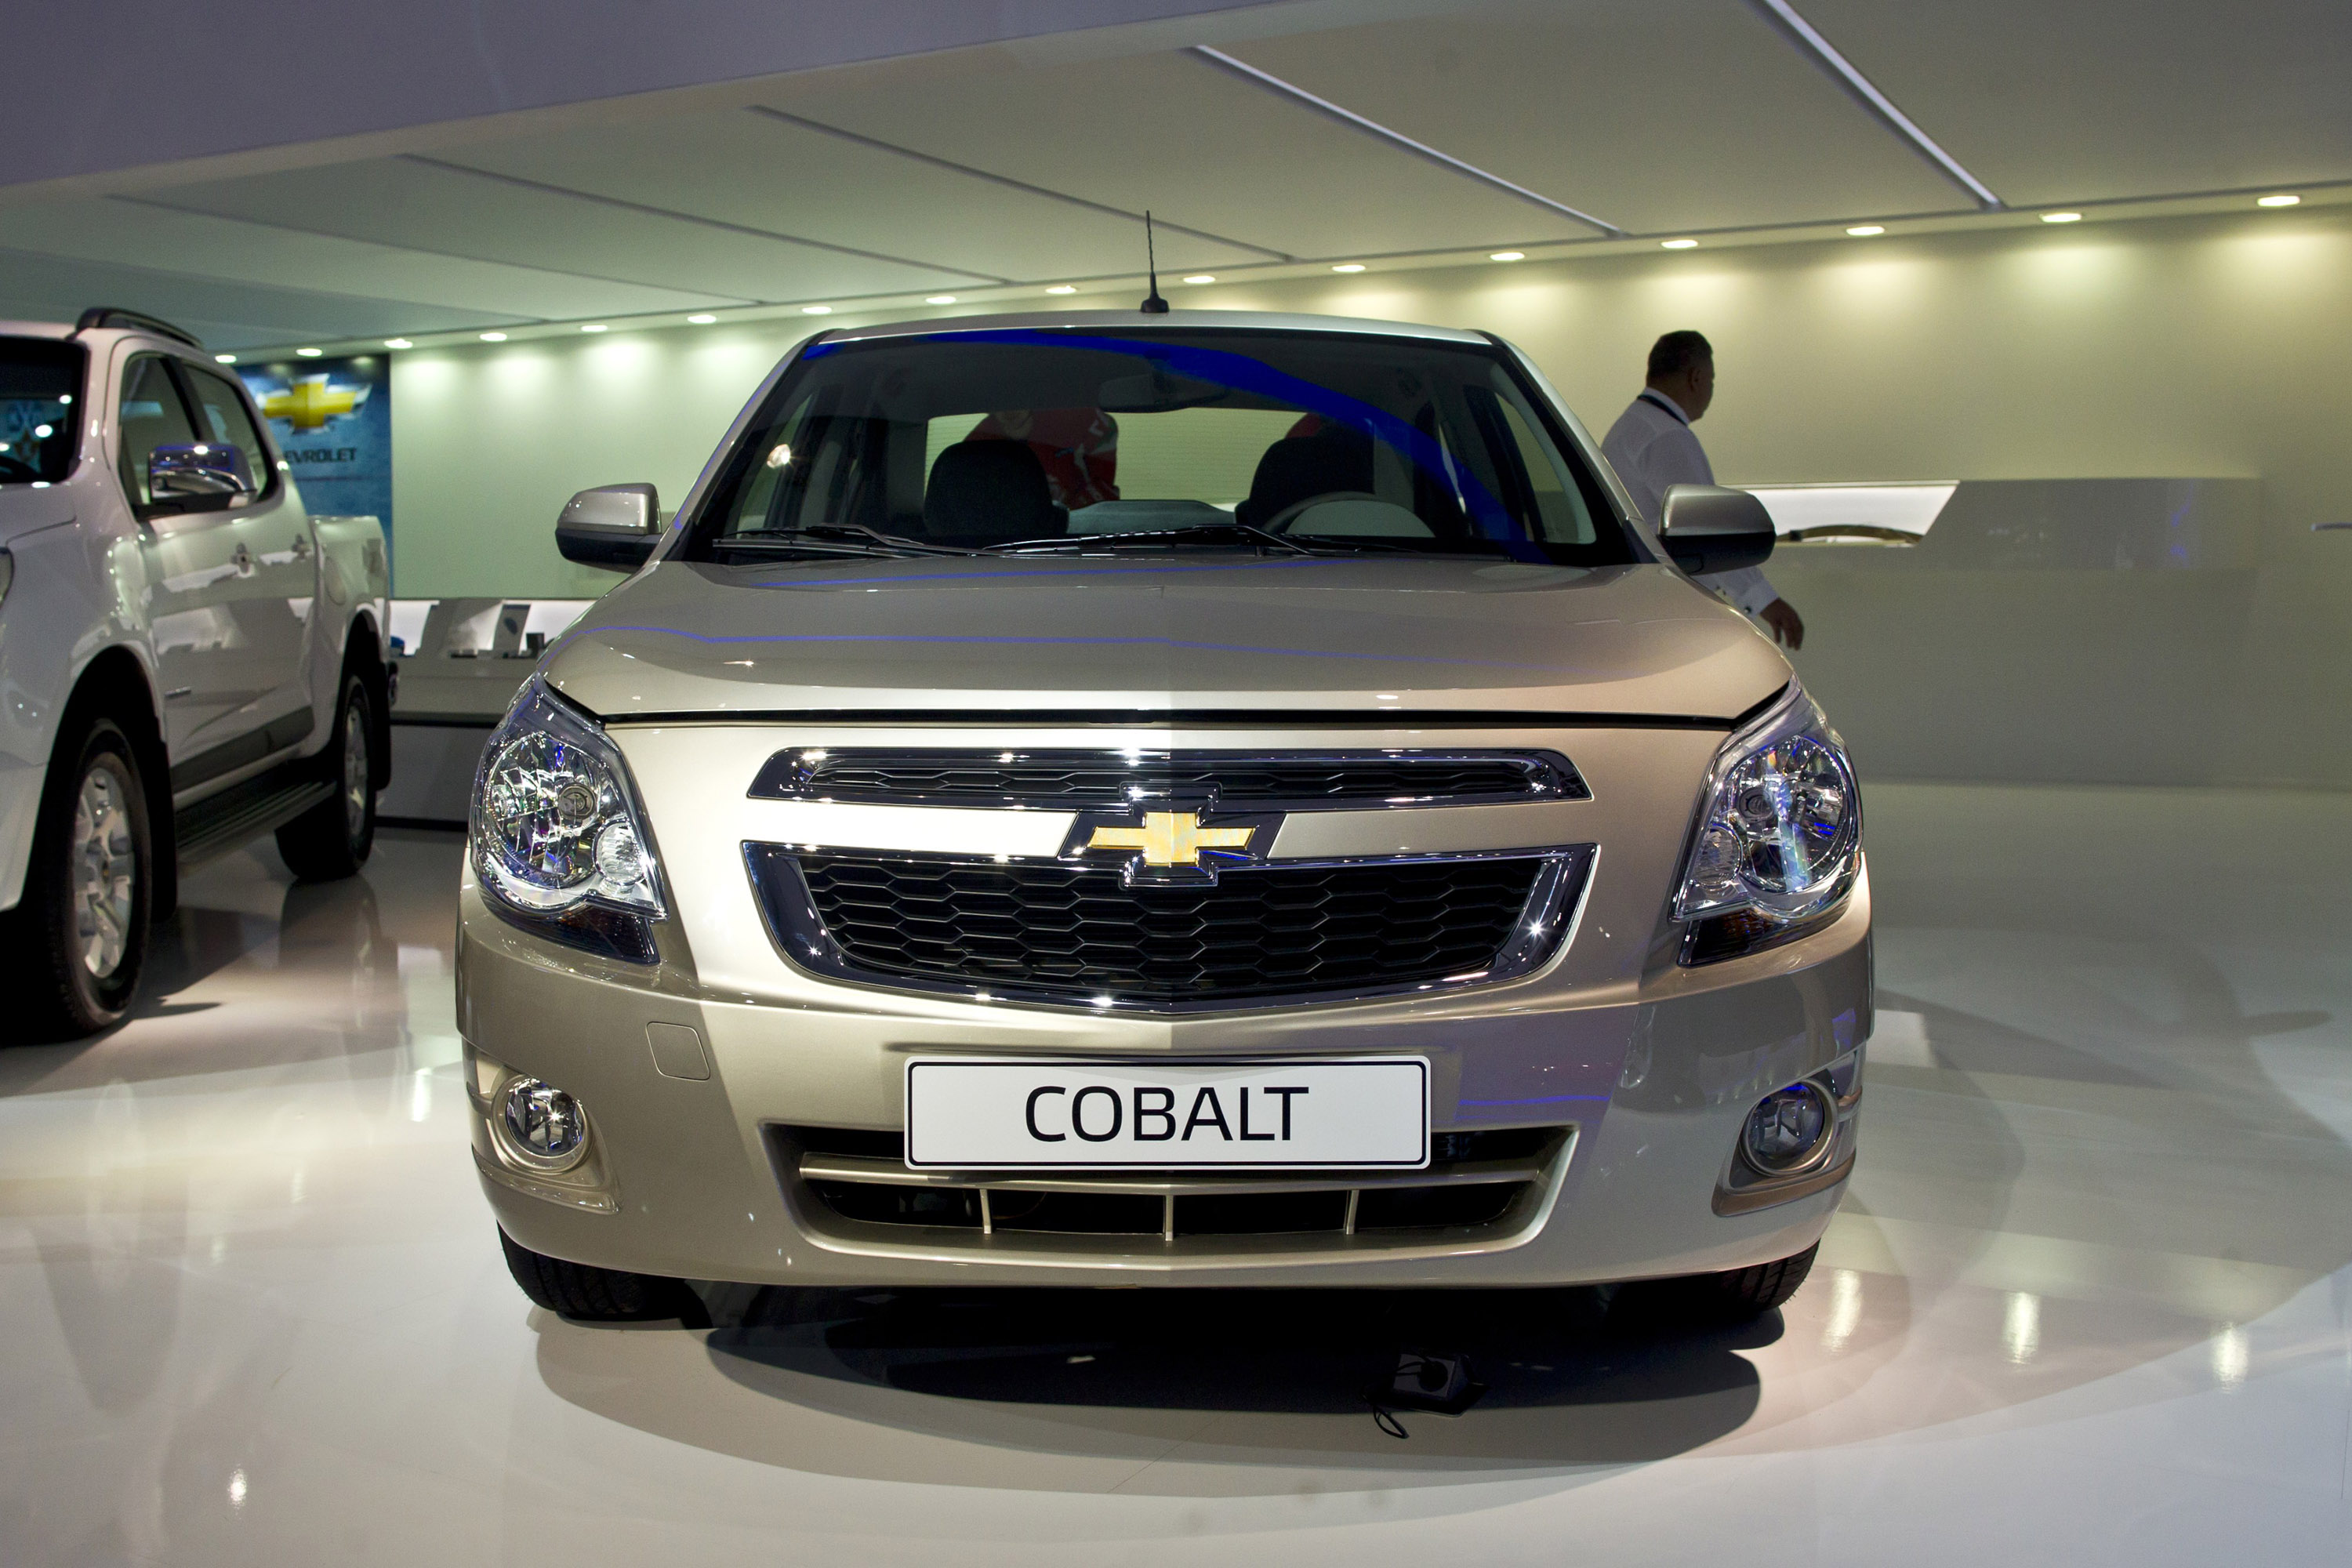 Chevrolet Cobalt Moscow 2012  Picture 73812